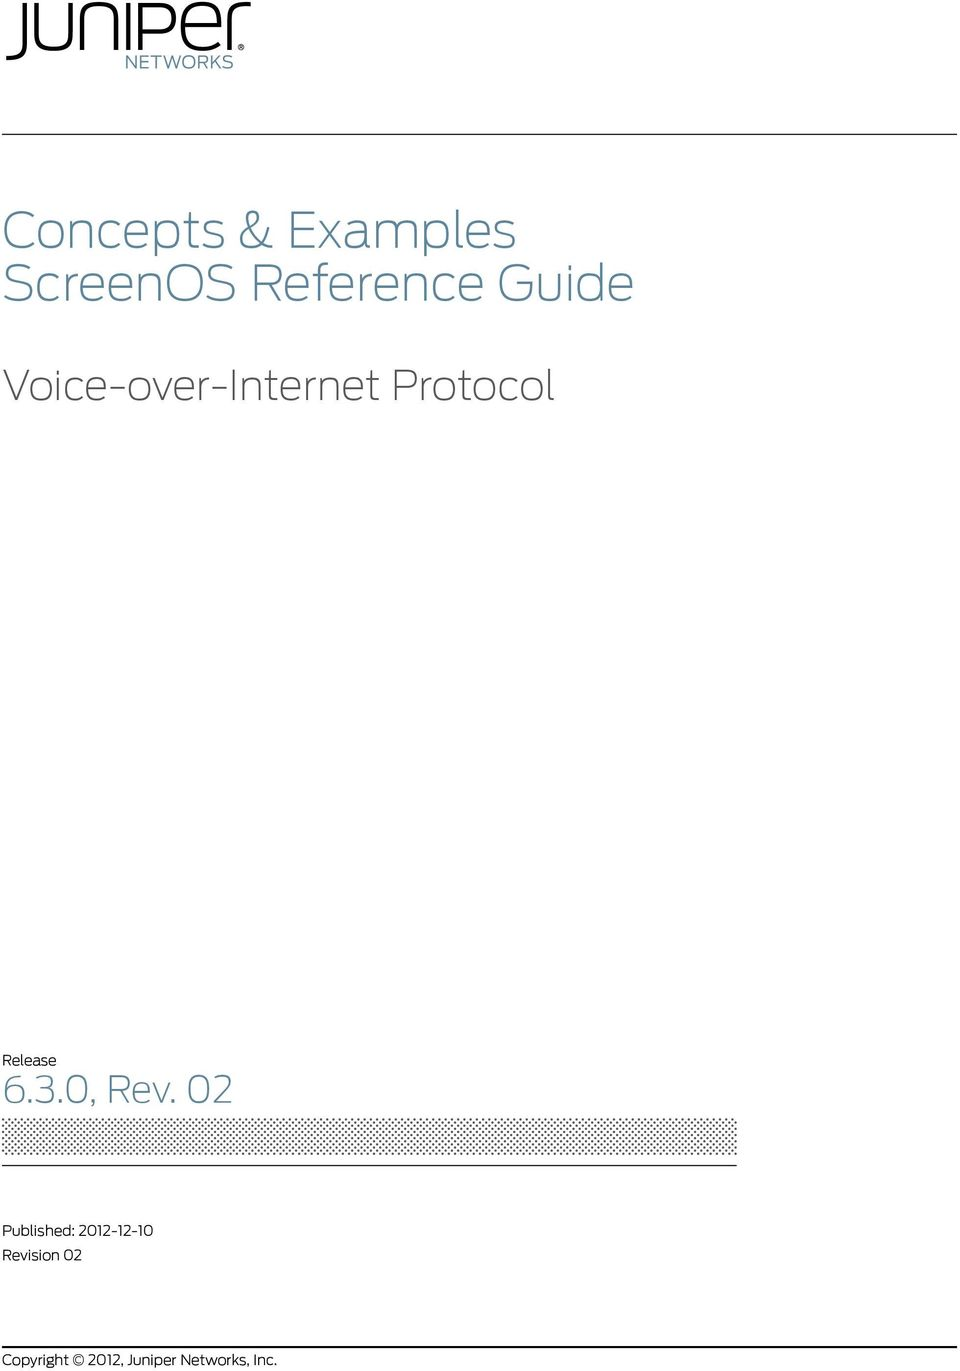 Voice-over-Internet Protocol